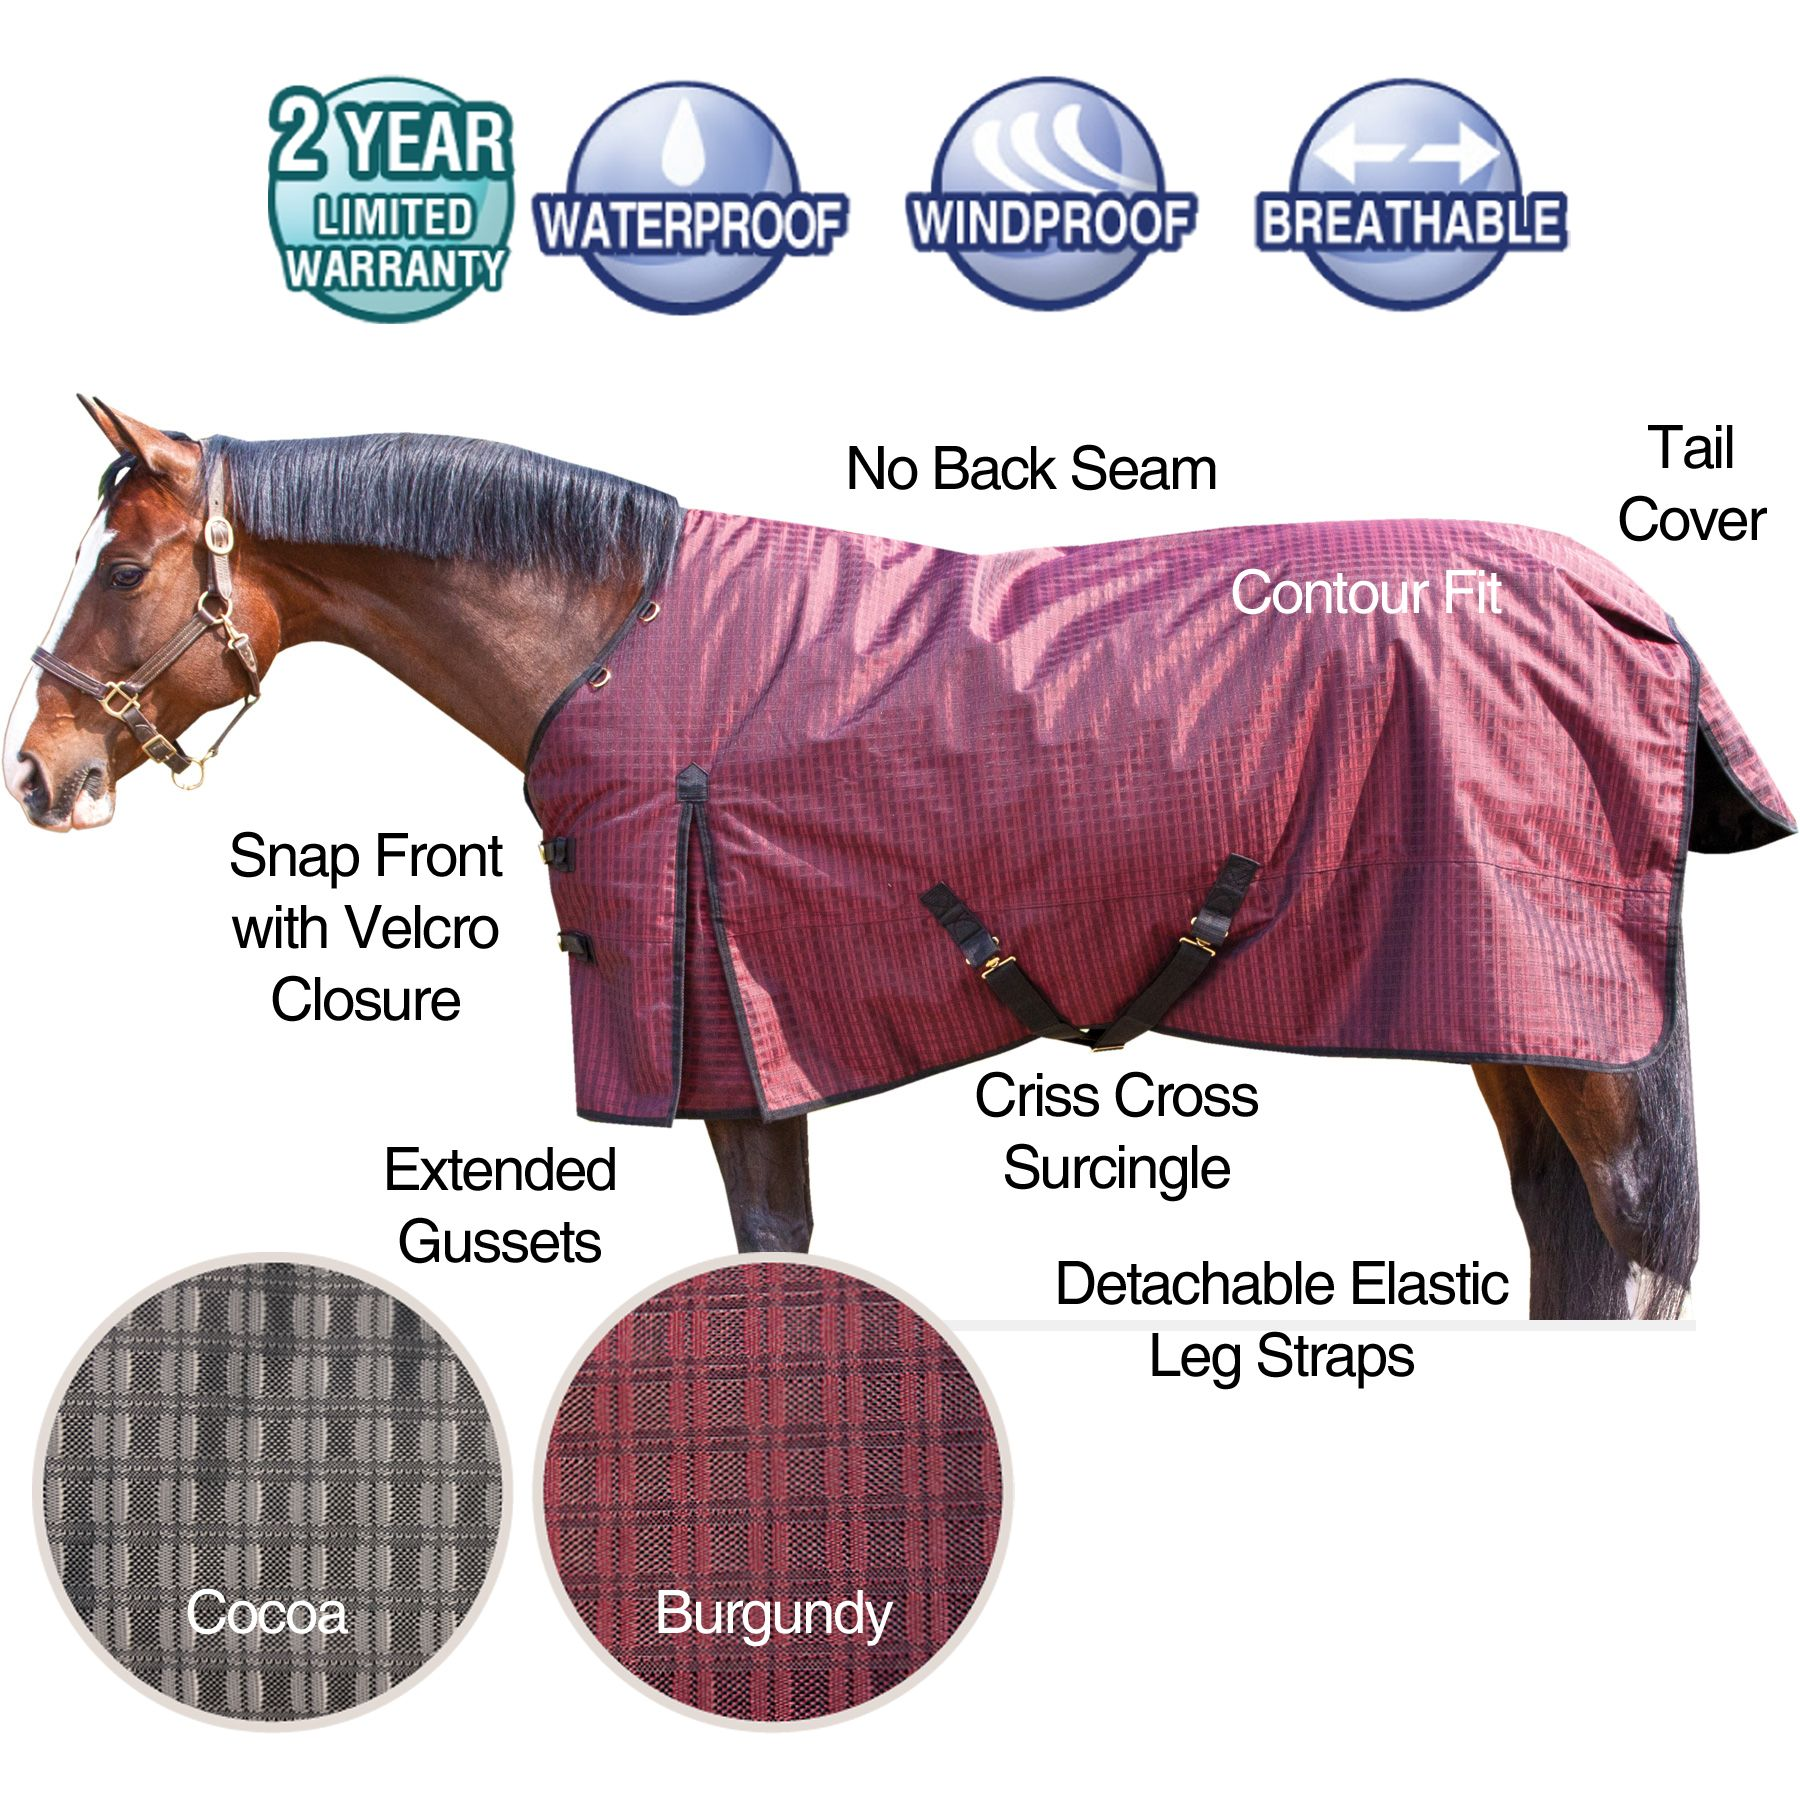 We love our StormShield® 1200D DOUBLE RIPSTOP Turnouts! This is one of newest designs for 2012! The 1200D polyester outer cover is textured to produce an elegant, extra tough double ripstop blanket that will last for years! Traditional Euro fit-no back seam. Blanket features include: contour fit, snap front with Velcro closure assist, extended gussets, criss cross surcingle, detachable elastic leg strap and a tail cover. Your choice of heavyweight and midweight. Neck cover available.